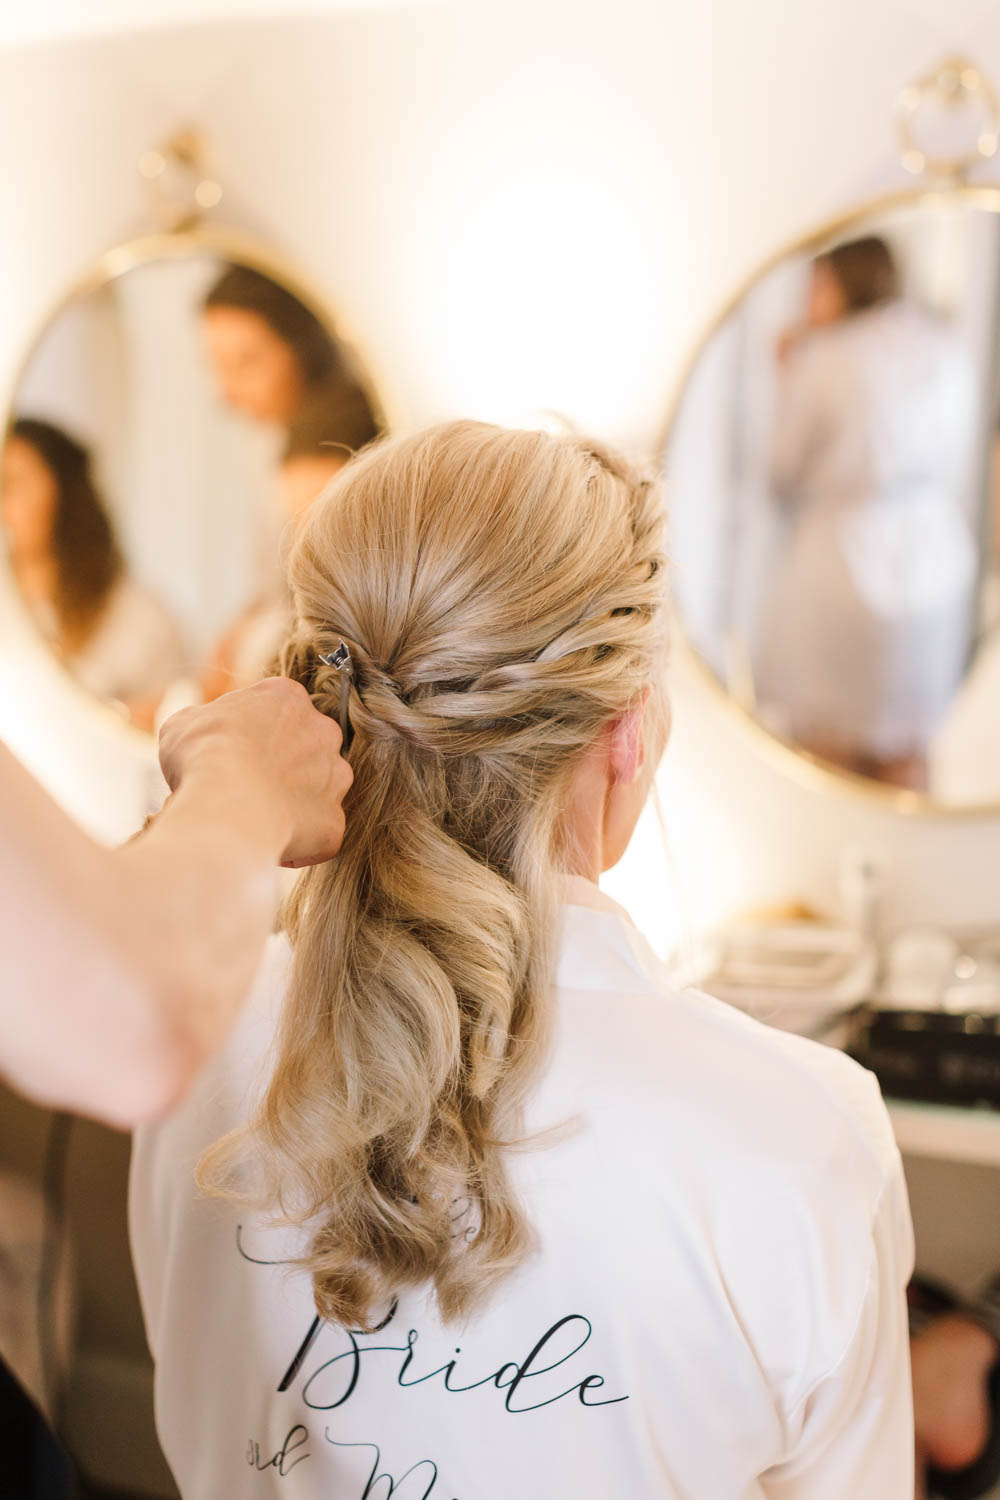 Bride Bridal Hair Style Up Do Plait Braid Accessory Dove Grey Wedding Danielle Smith Photography